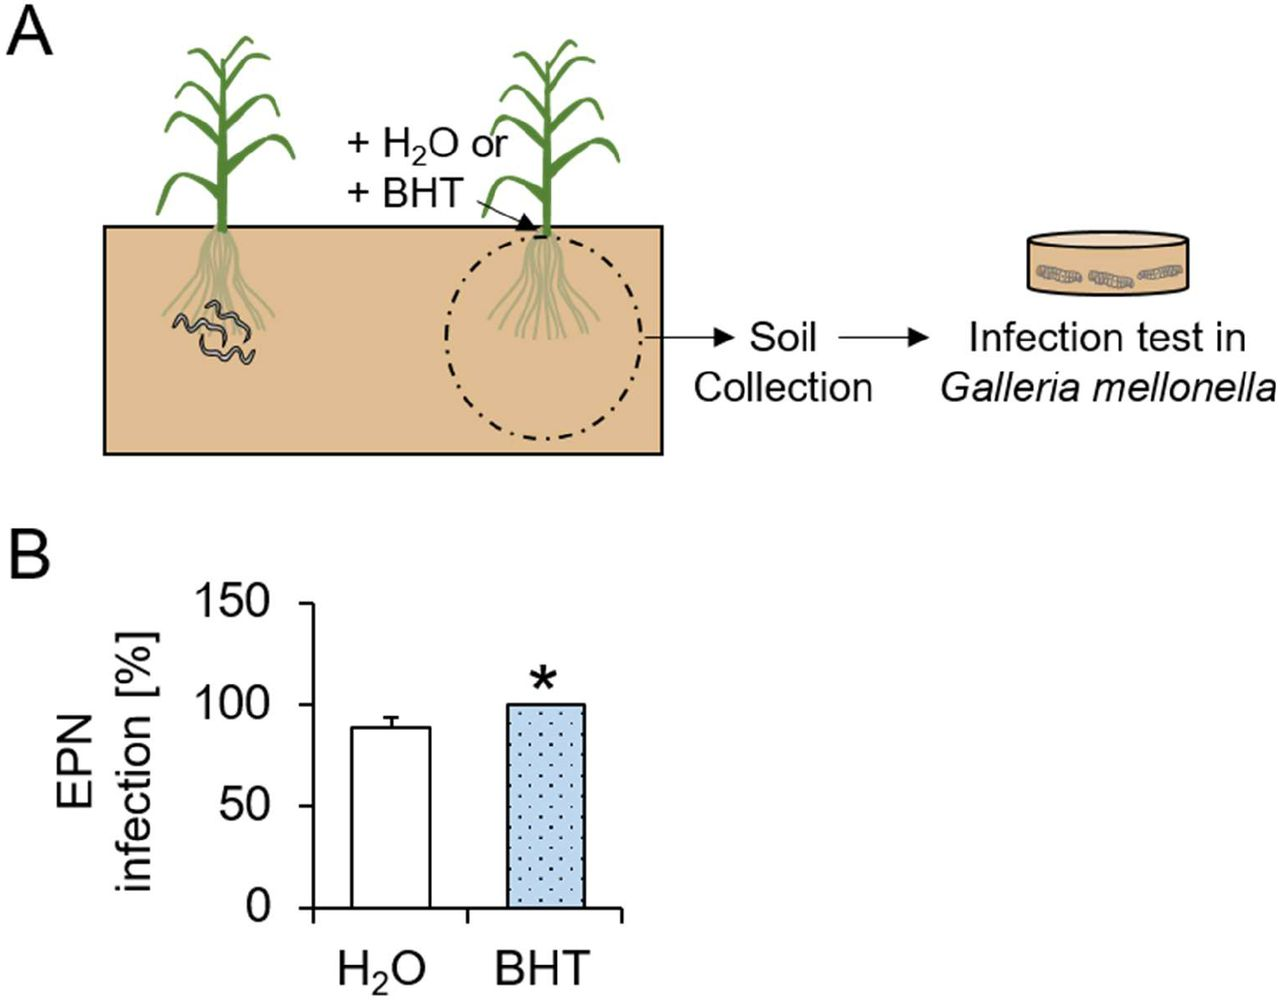 Butylated hydroxytoluene attracts entomopathogenic nematodes and increases their predation success in the soil. A. Visual representation of experimental setup. Each arena contained two pairs of plants separated by 15 cm. BHT or water (H 2 O) was added to the soil of one of the plant pairs. All treatment solutions contained 0.01% ethanol. EPNs were added to the soil of the second plant pair. After two days, 150 mg soil was collected from the BHT and H 2 O treated plants and placed in cups containing three Galleria mellonella larvae for infection tests. B. Proportion of EPN-infected G. mellonella larvae (mean ± SEM) exposed to soil collected from water (H 2 O) and BHT sides of the different arenas (n=12). Star indicate significant differences (*: p